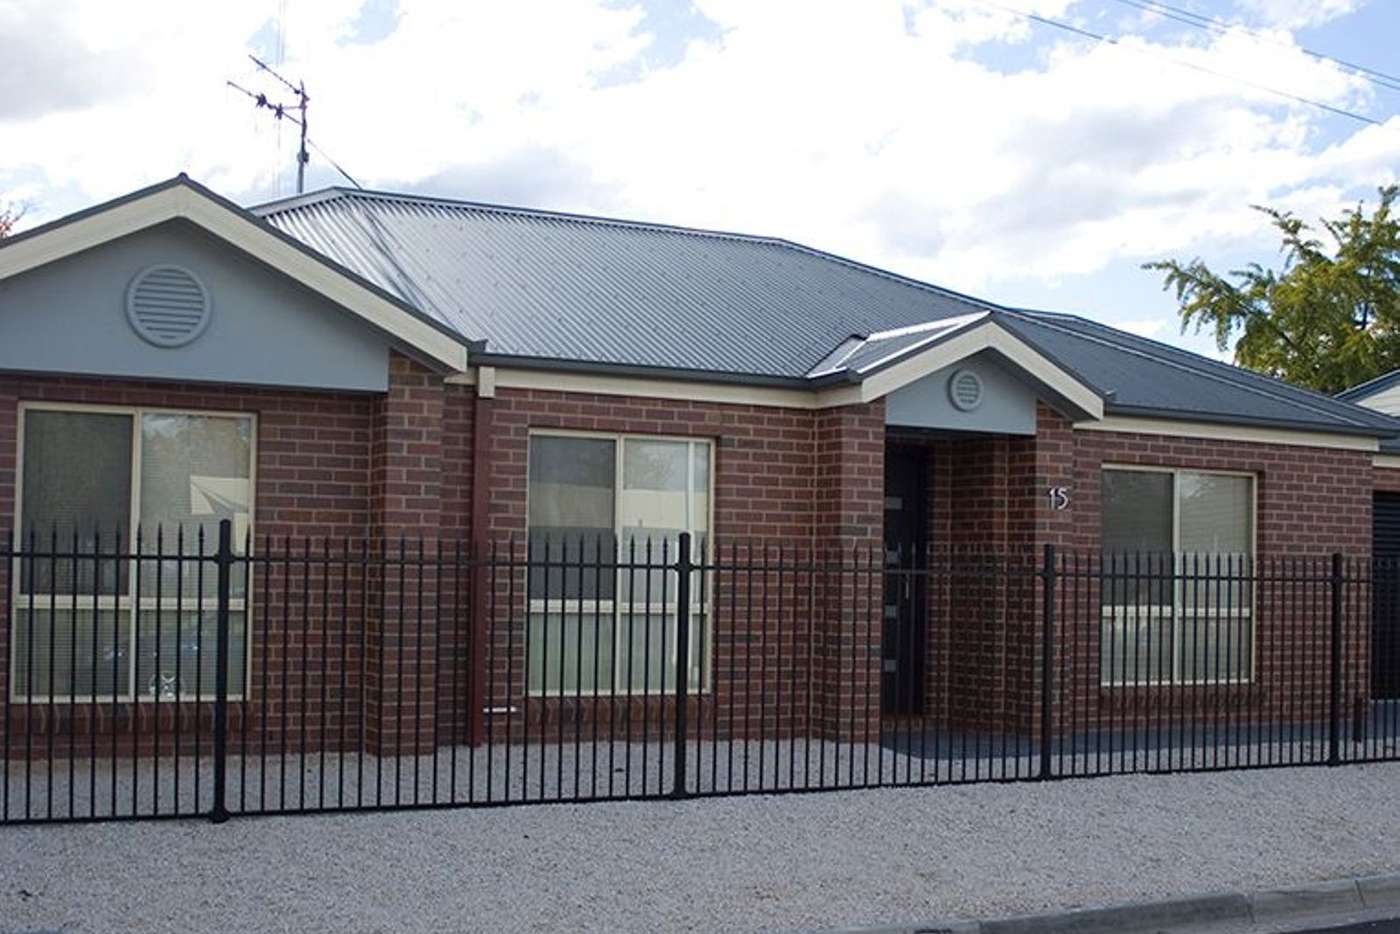 Main view of Homely house listing, 15 Uley Street, Bendigo VIC 3550